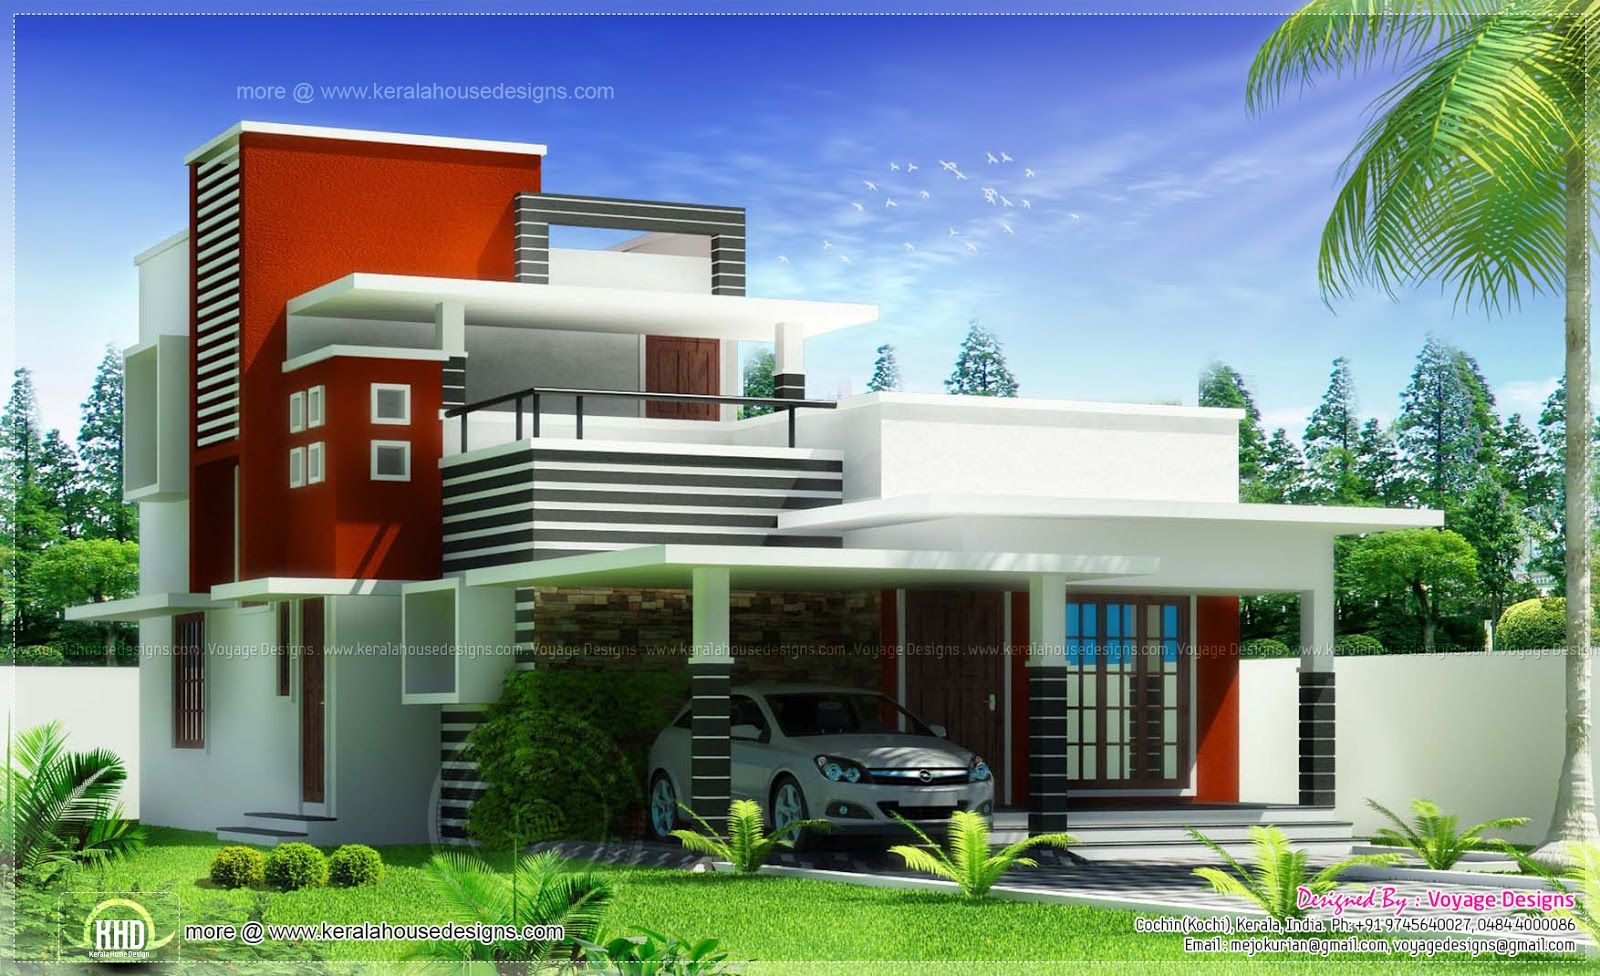 Kerala house designs architecture pinterest kerala for Modern house designs 2015